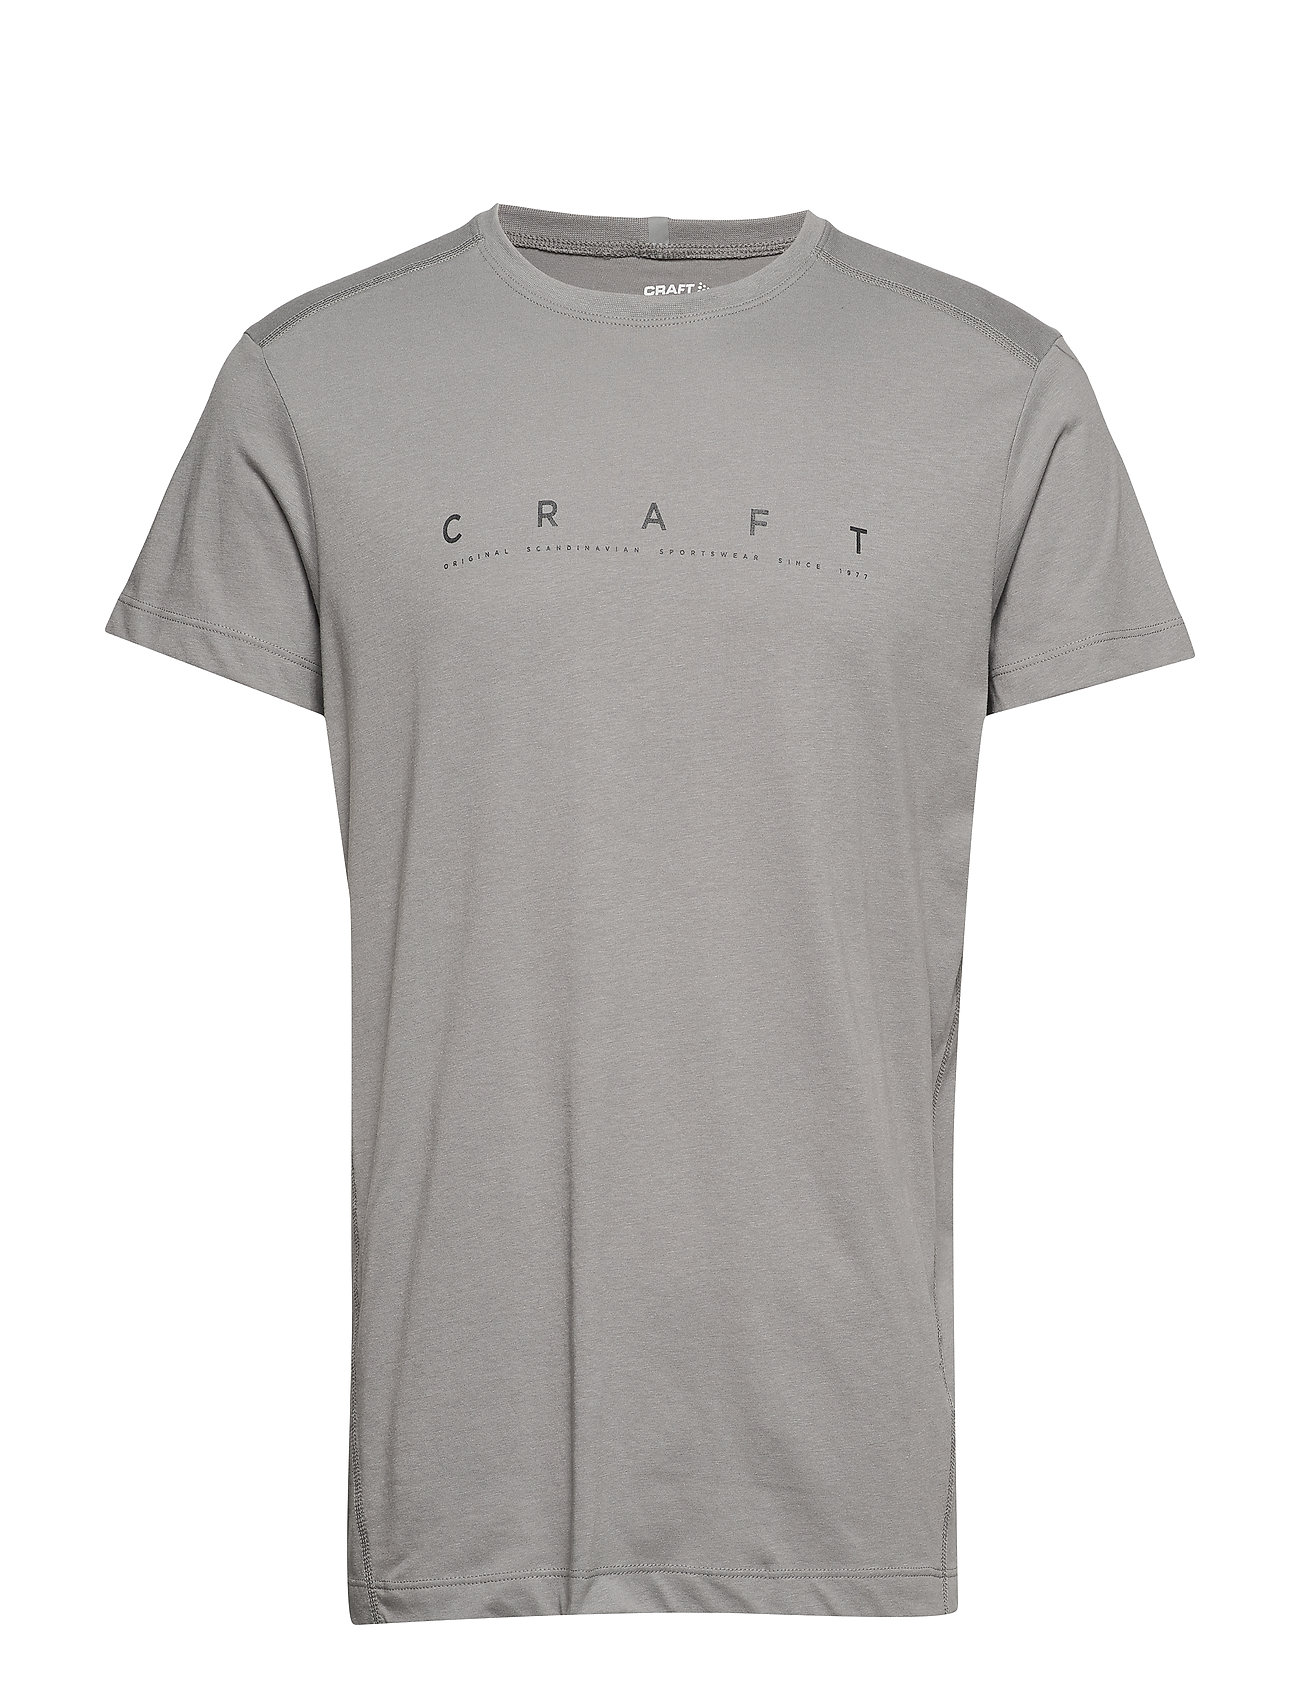 Craft DEFT 2.0 SS TEE  - MONUMENT